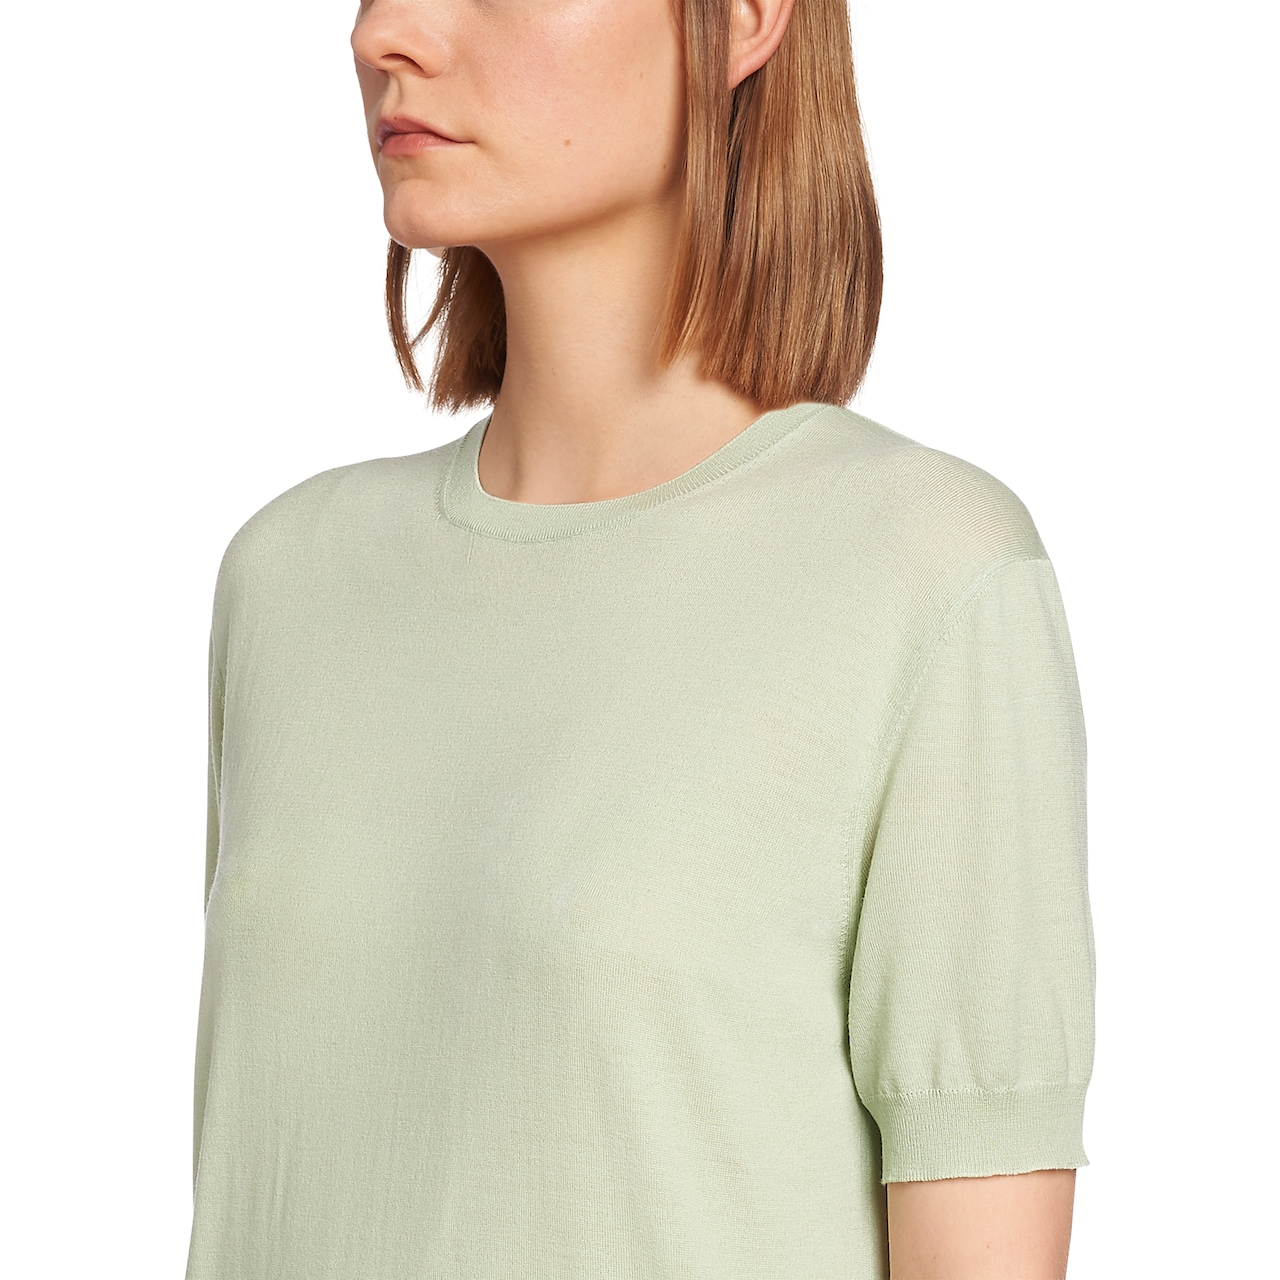 Worsted wool T-shirt